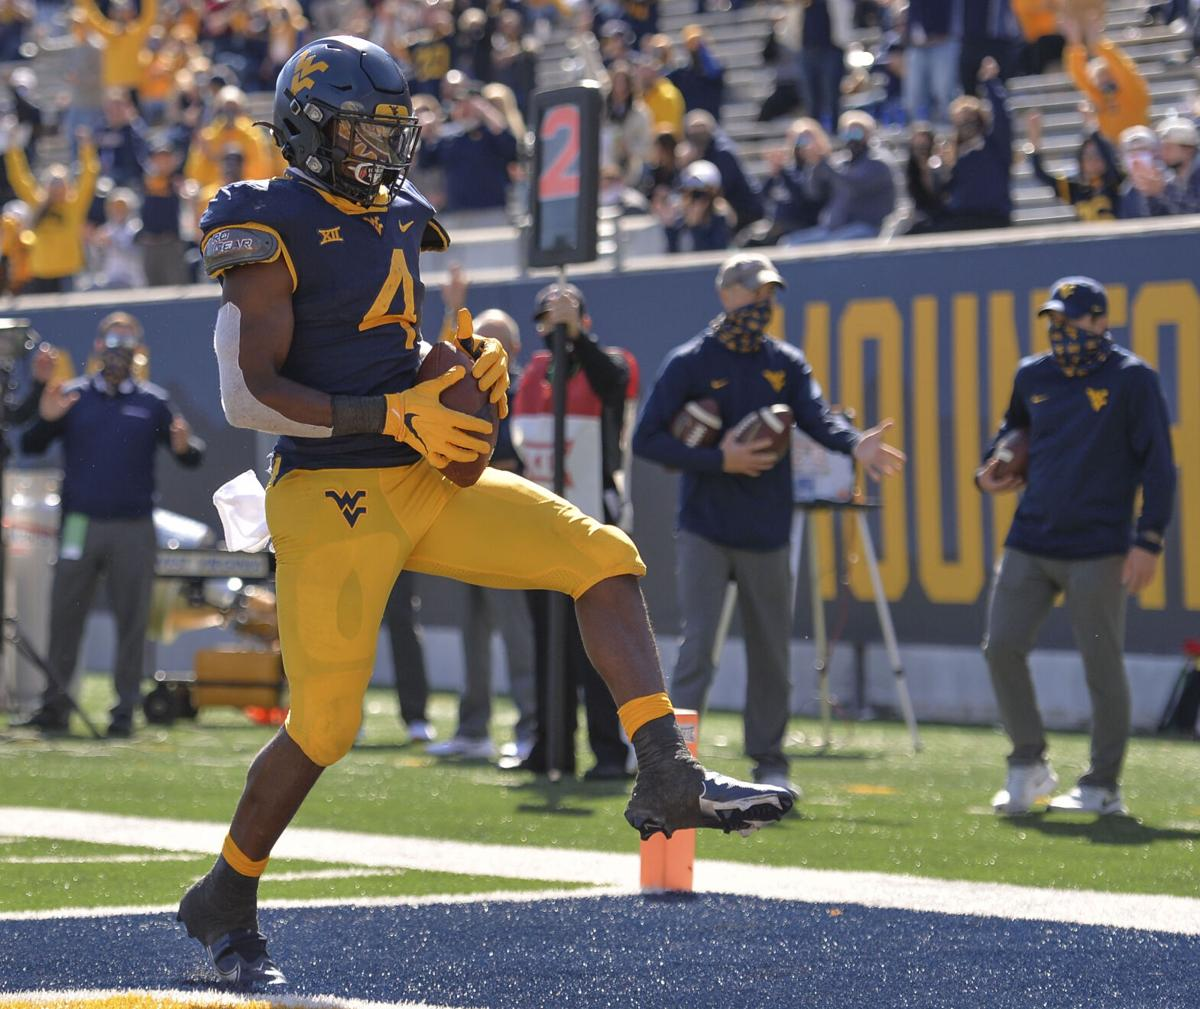 West Virginia Mountaineers running back Leddie Brown (4) makes a catch for a touchdown against the Kansas Jayhawks Saturday, Oct. 16, 2020, in Morgantown.